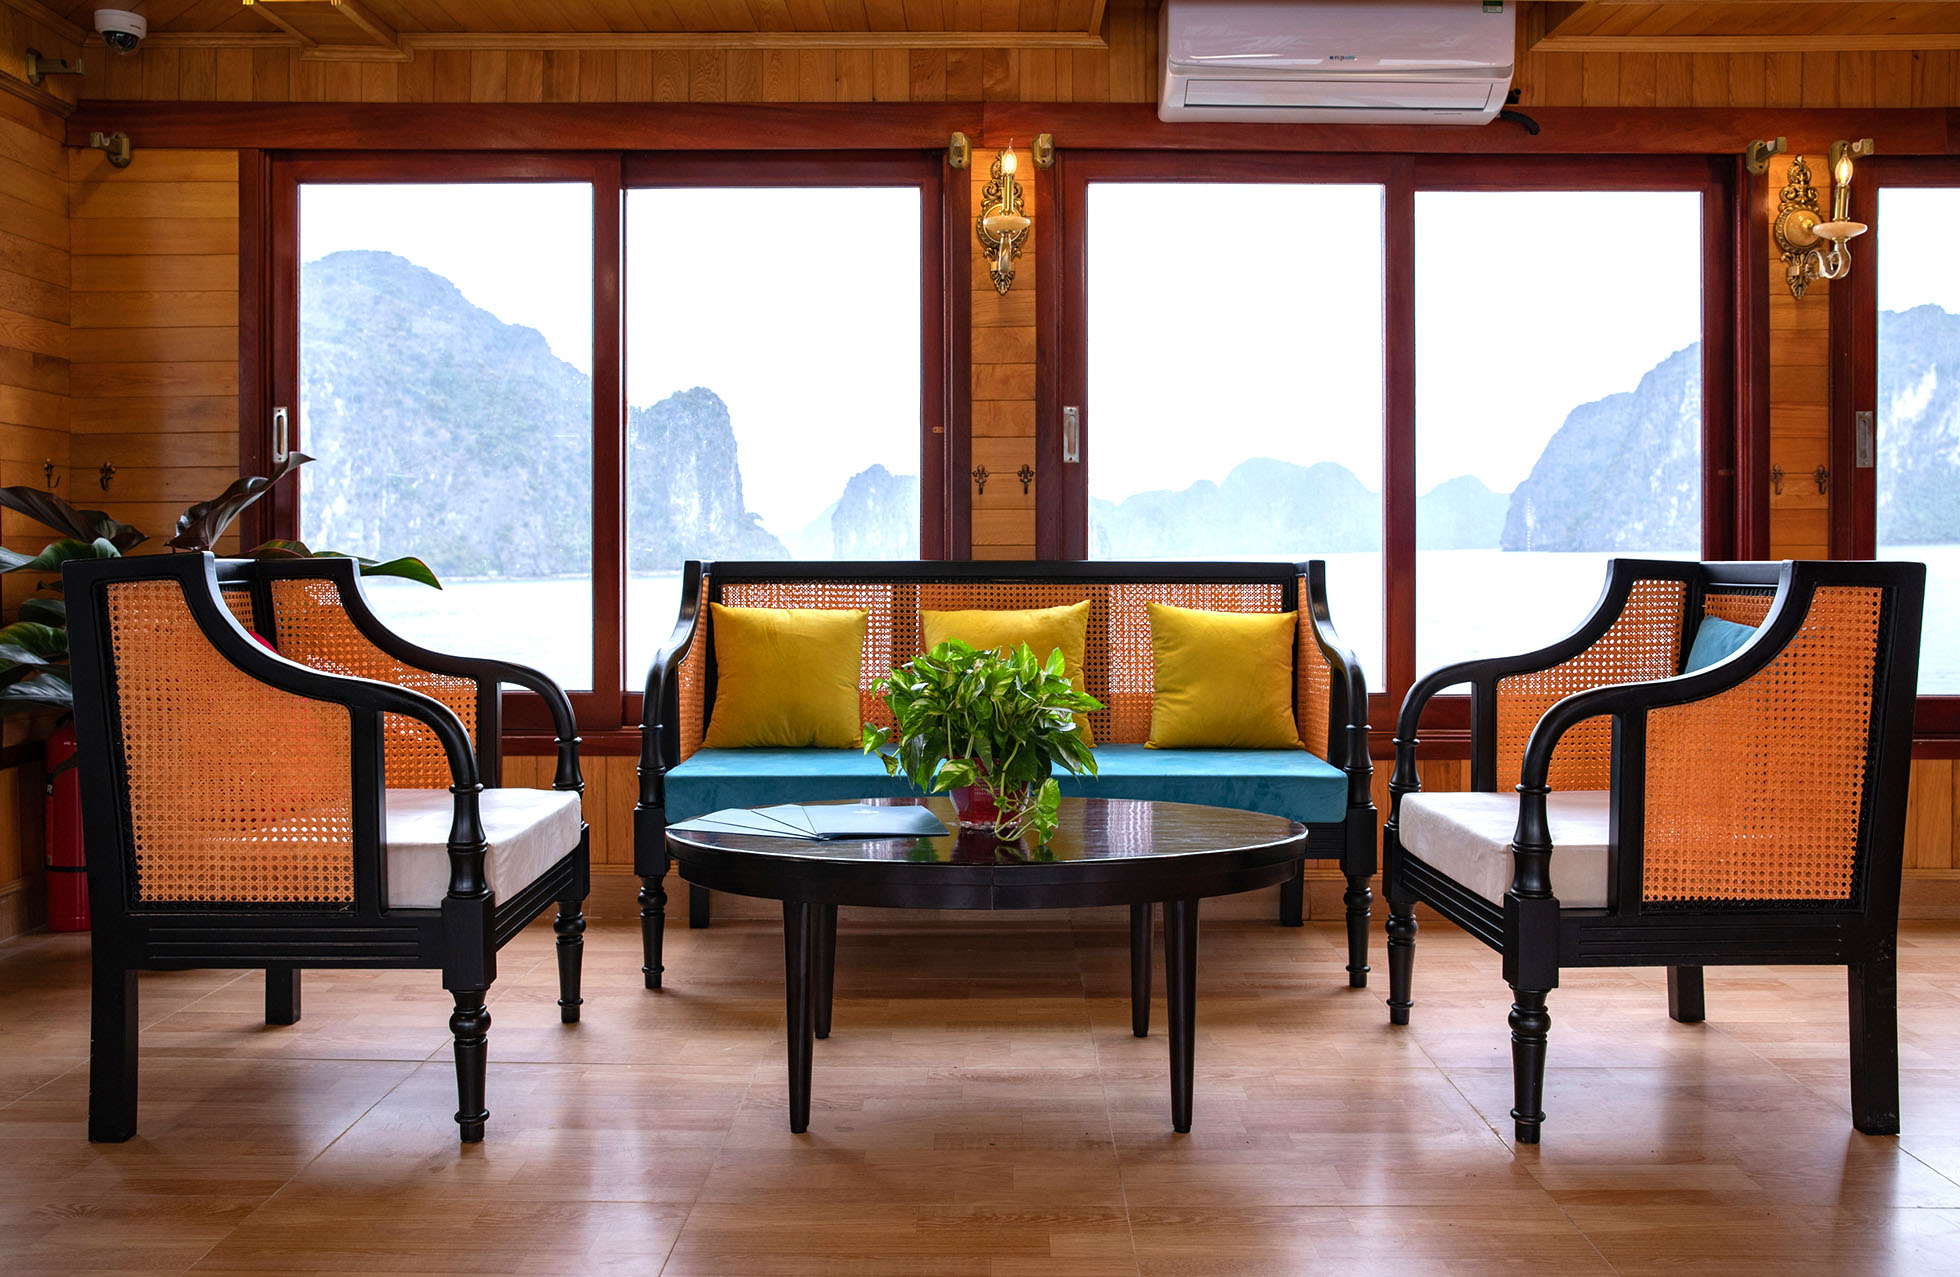 Halong Bay 1 day tour from Hanoi by Cruises 2